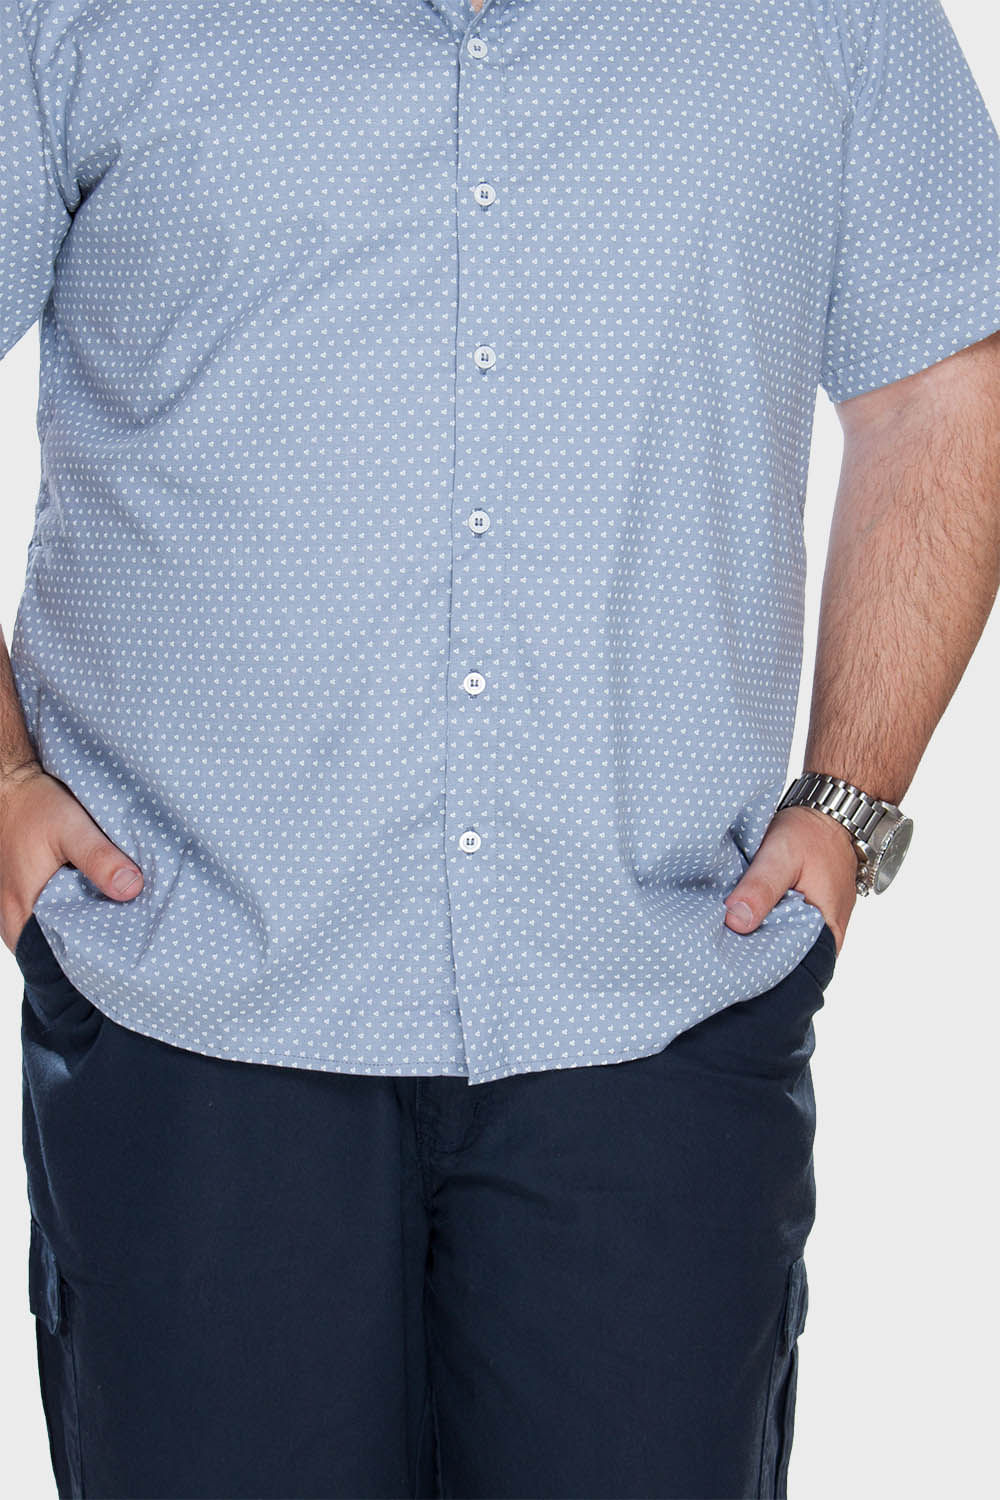 Camisa-Micro-Estampa-Plus-Size_5